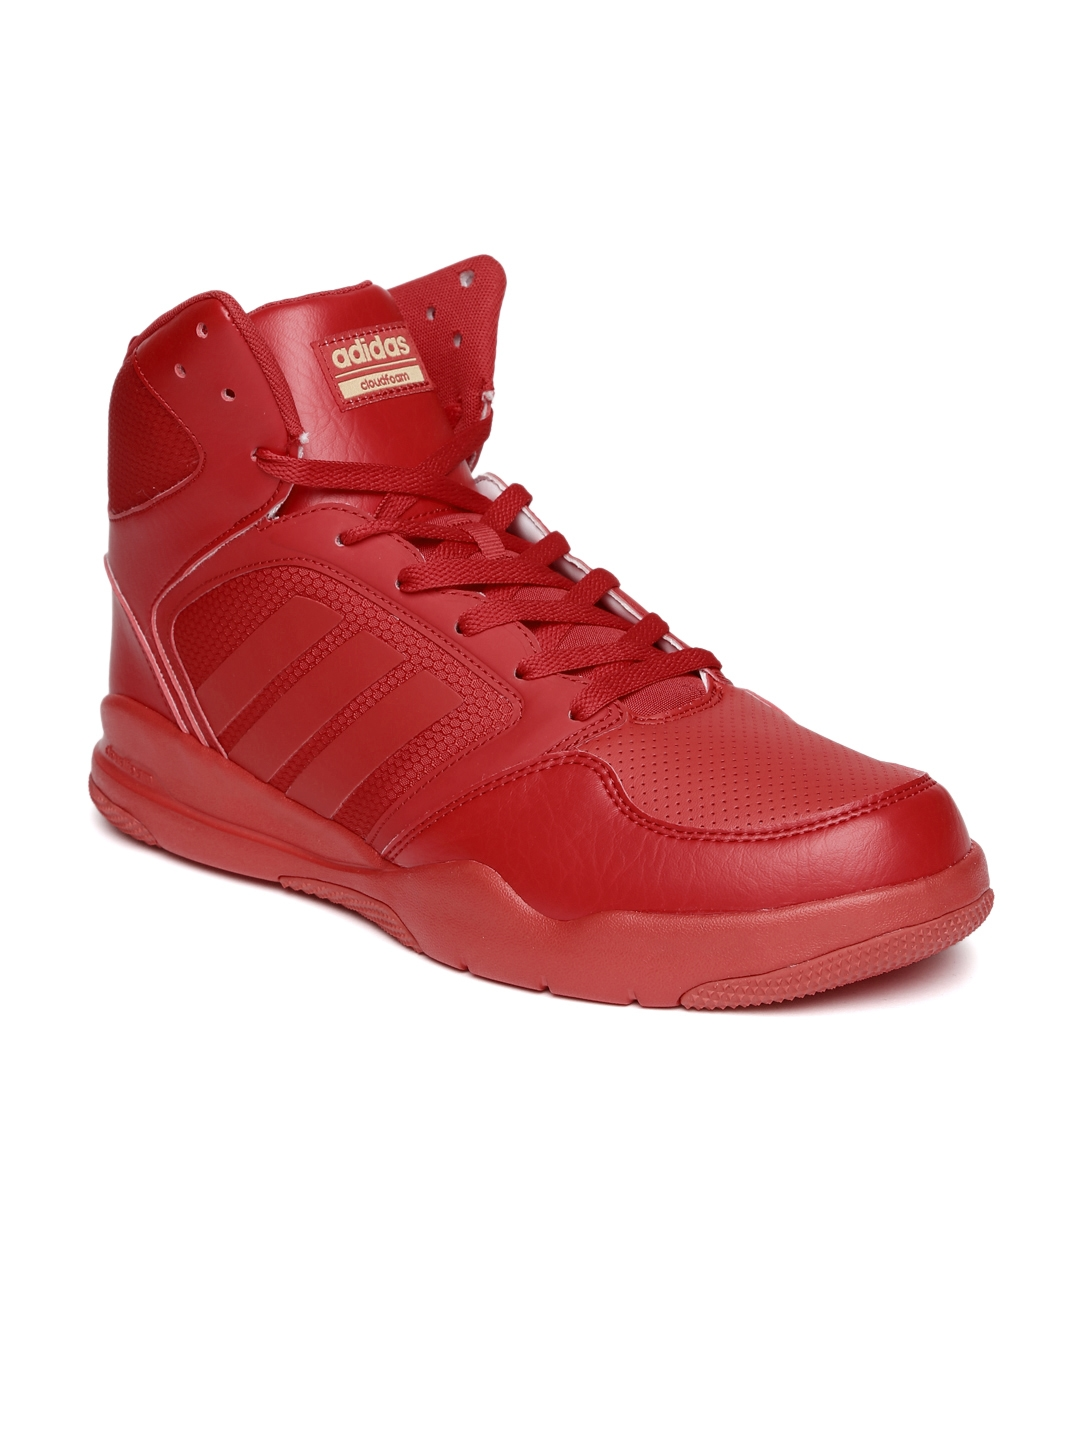 Adidas Neo CLOUDFOAM REWIND MID Sneakers (Red)